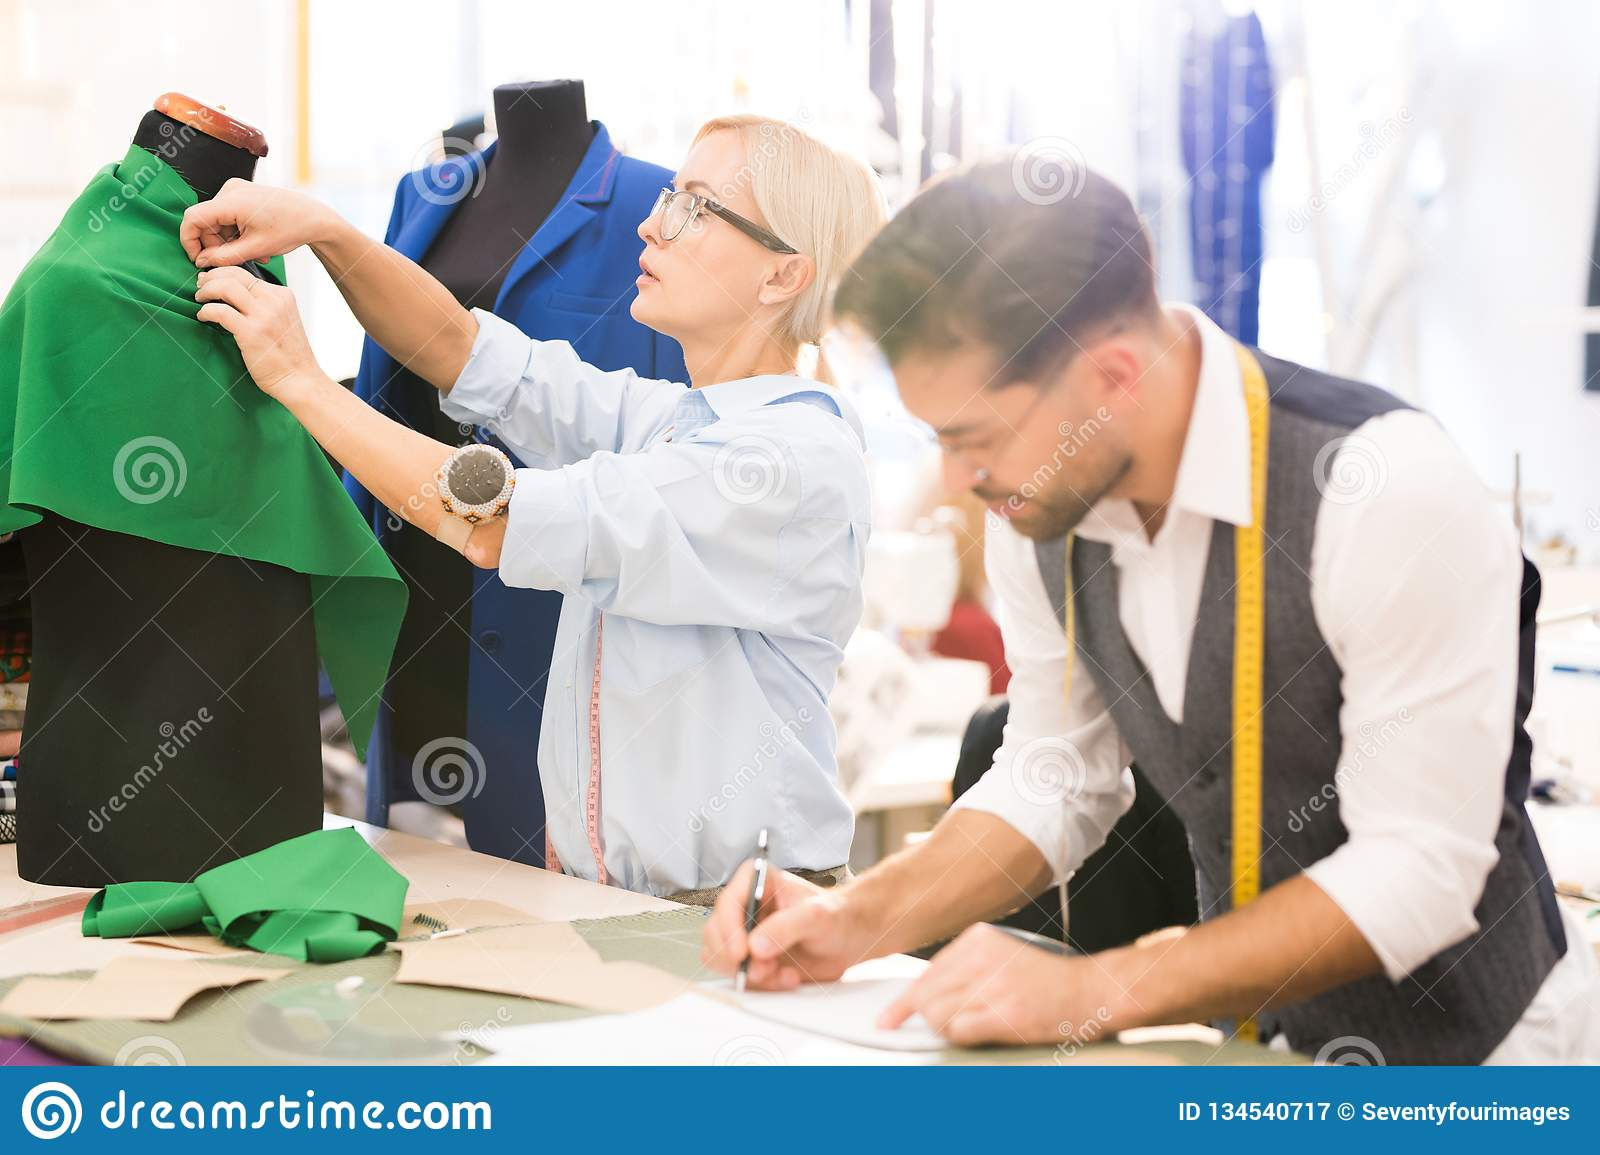 Fashion Designers In Traditional Atelier Stock Image Image Of Small Craft 134540717